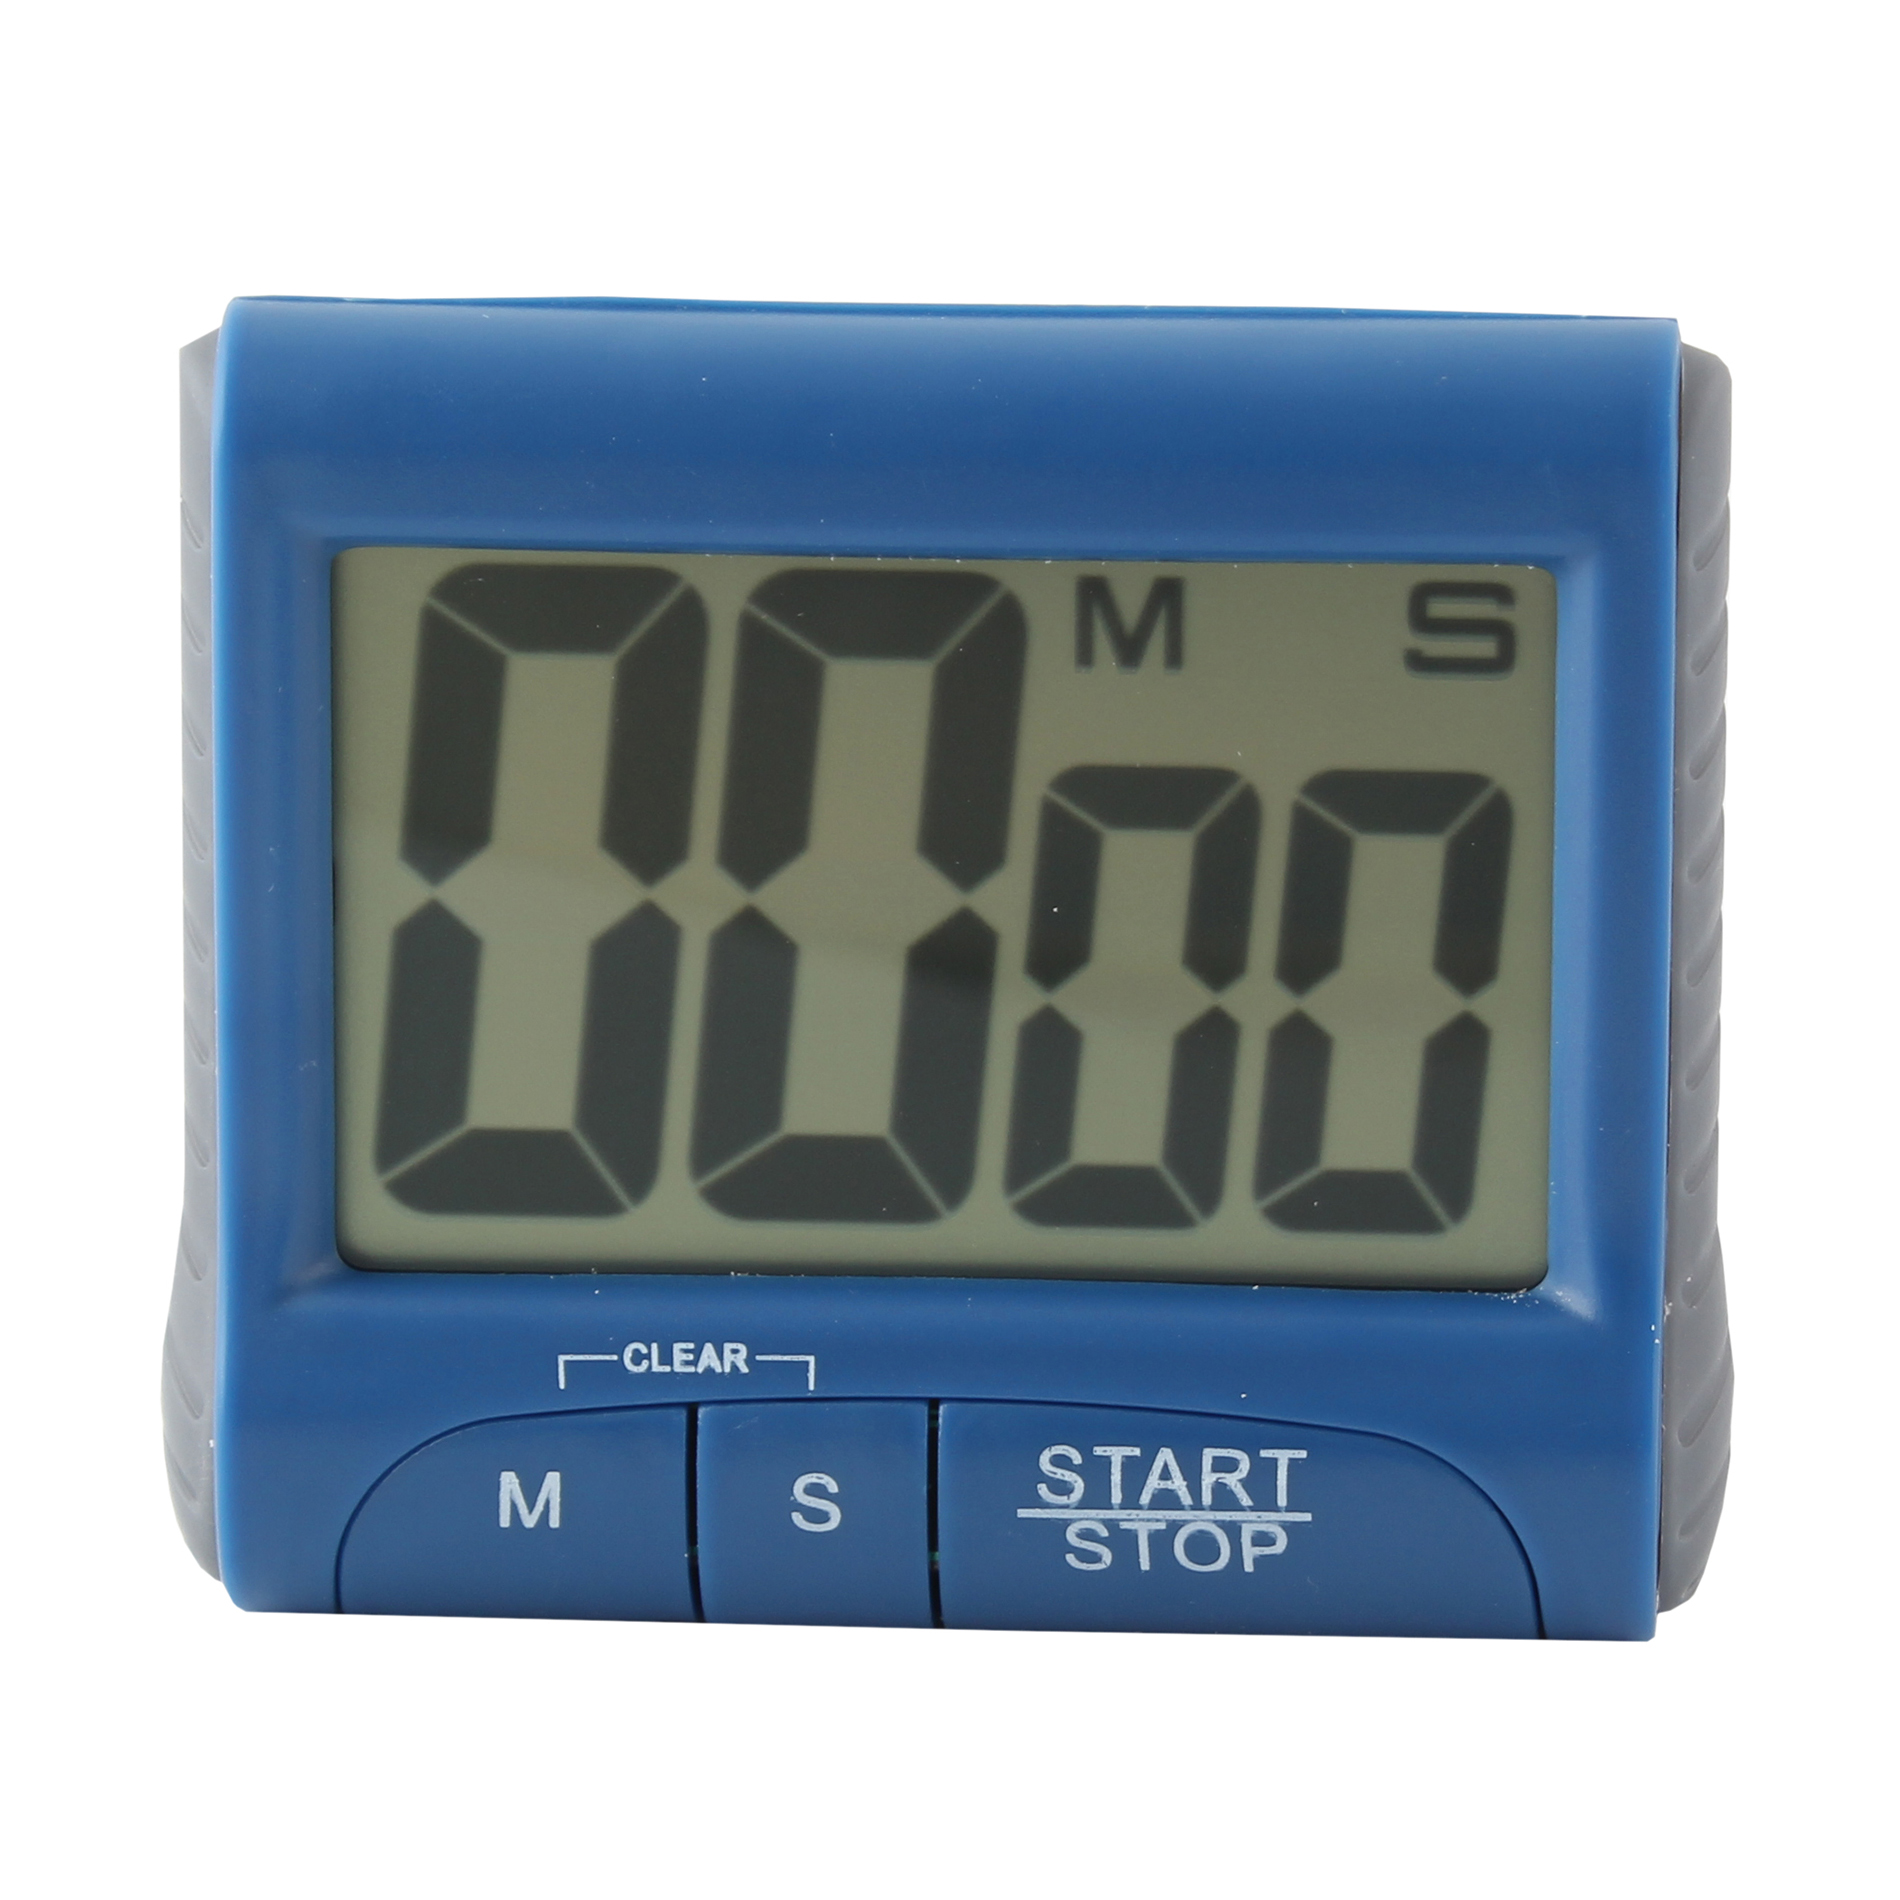 Digital Large LCD display Timer, Electronic Countdown Alarm Kitchen Timer, Blue by Unbranded